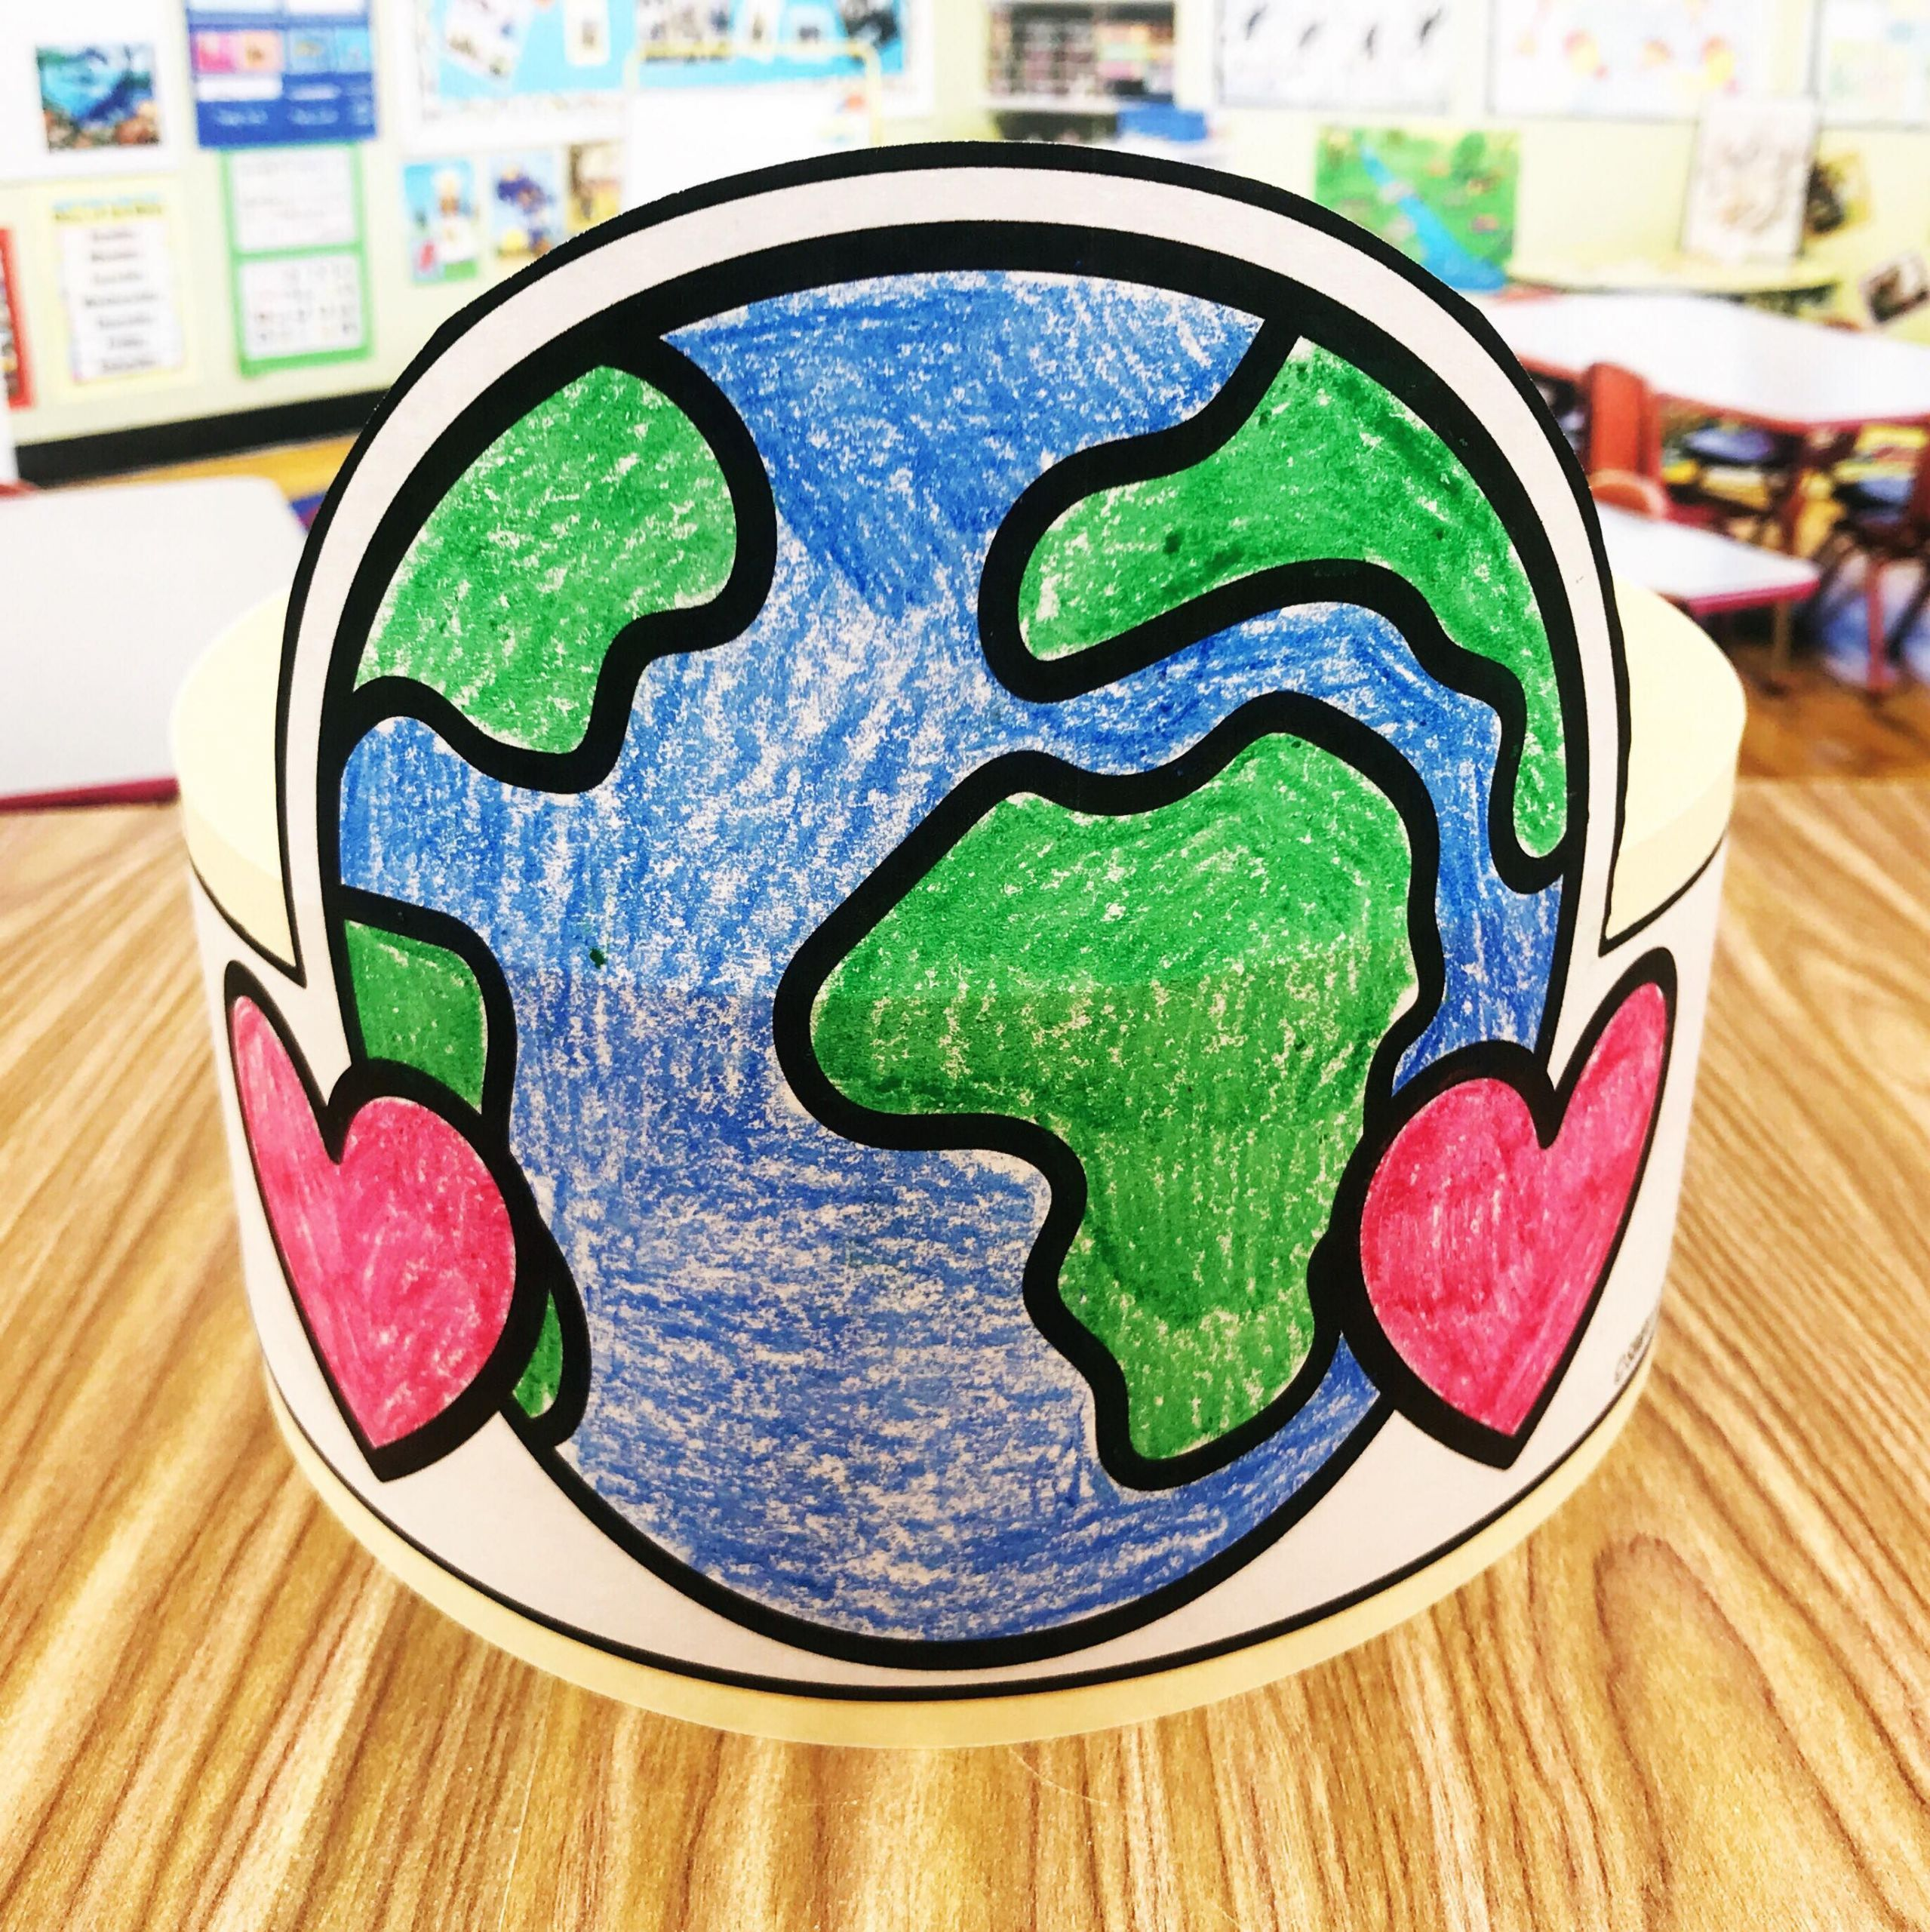 6 Earth Preschool Worksheets In